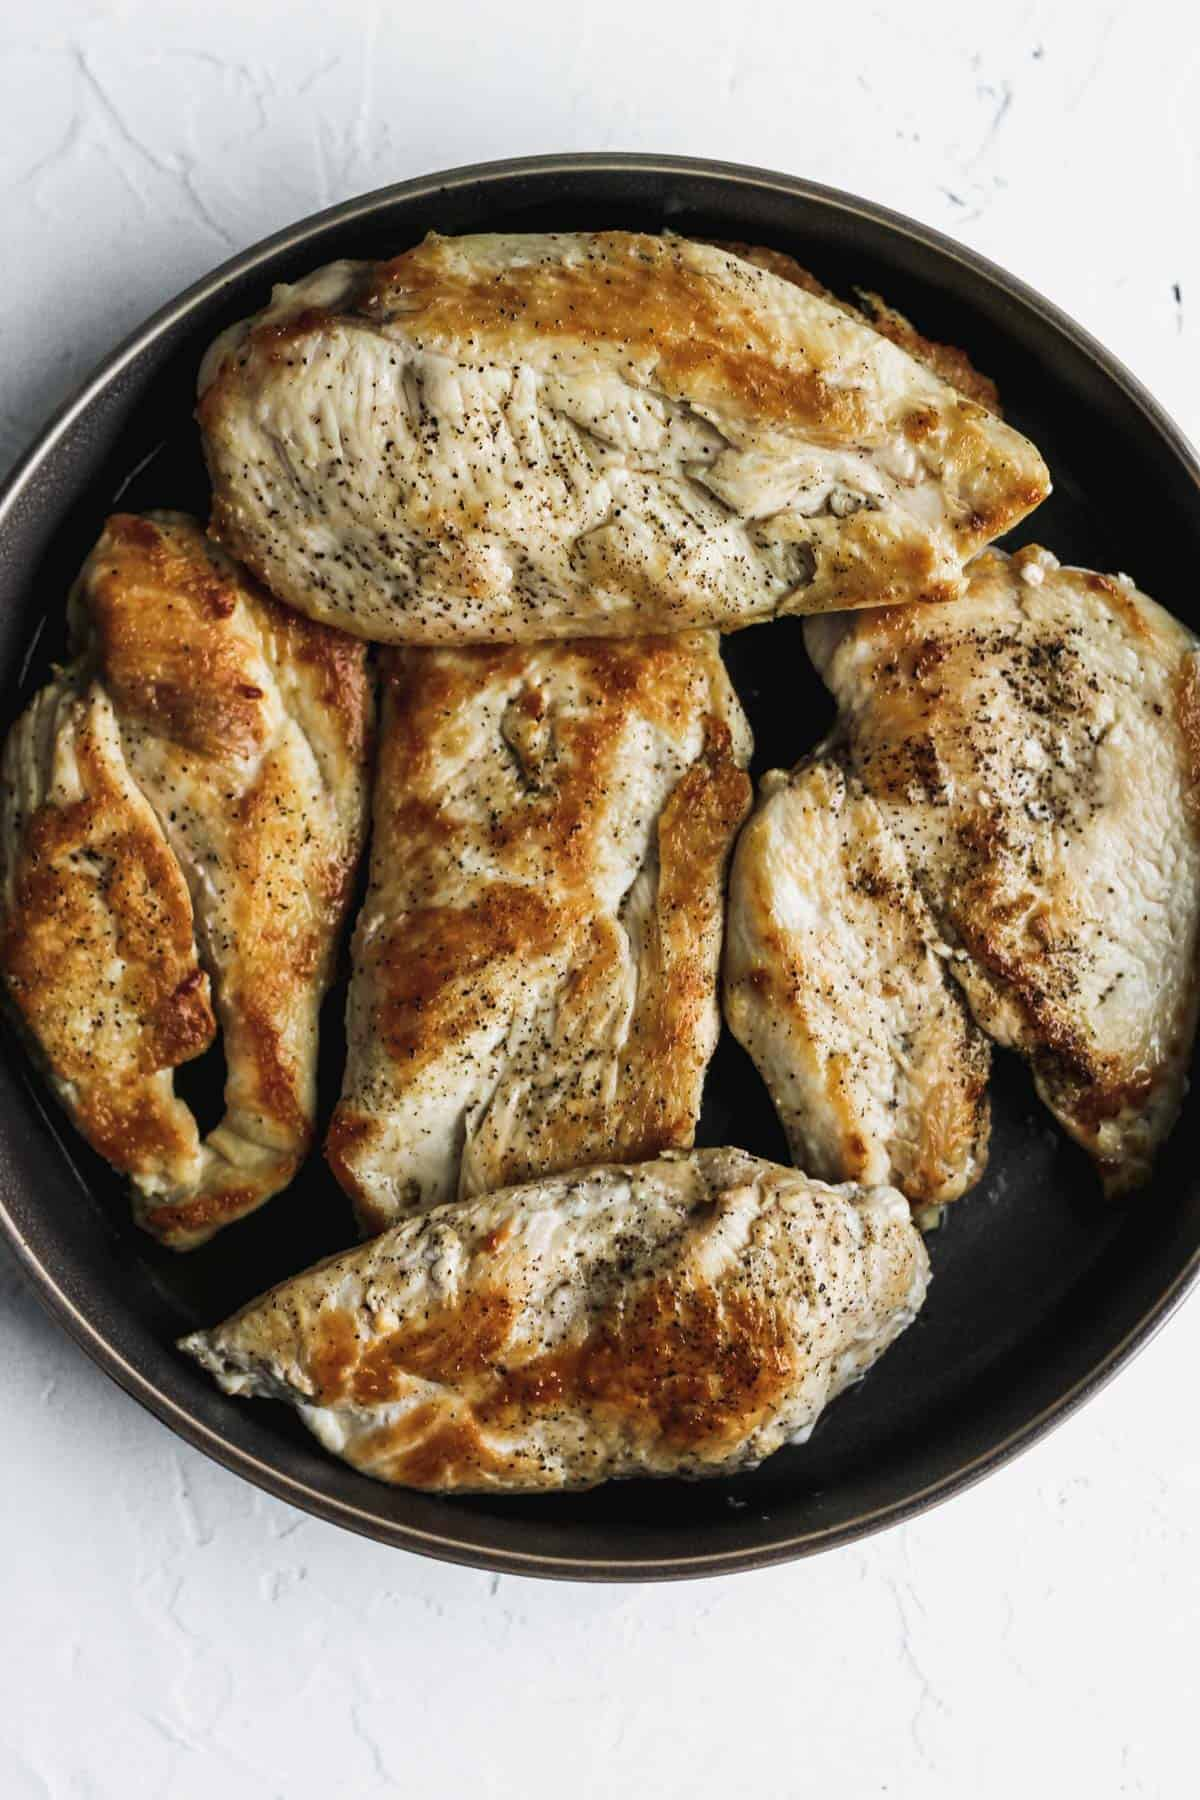 Browned and cooked chicken on a dark gray plate.